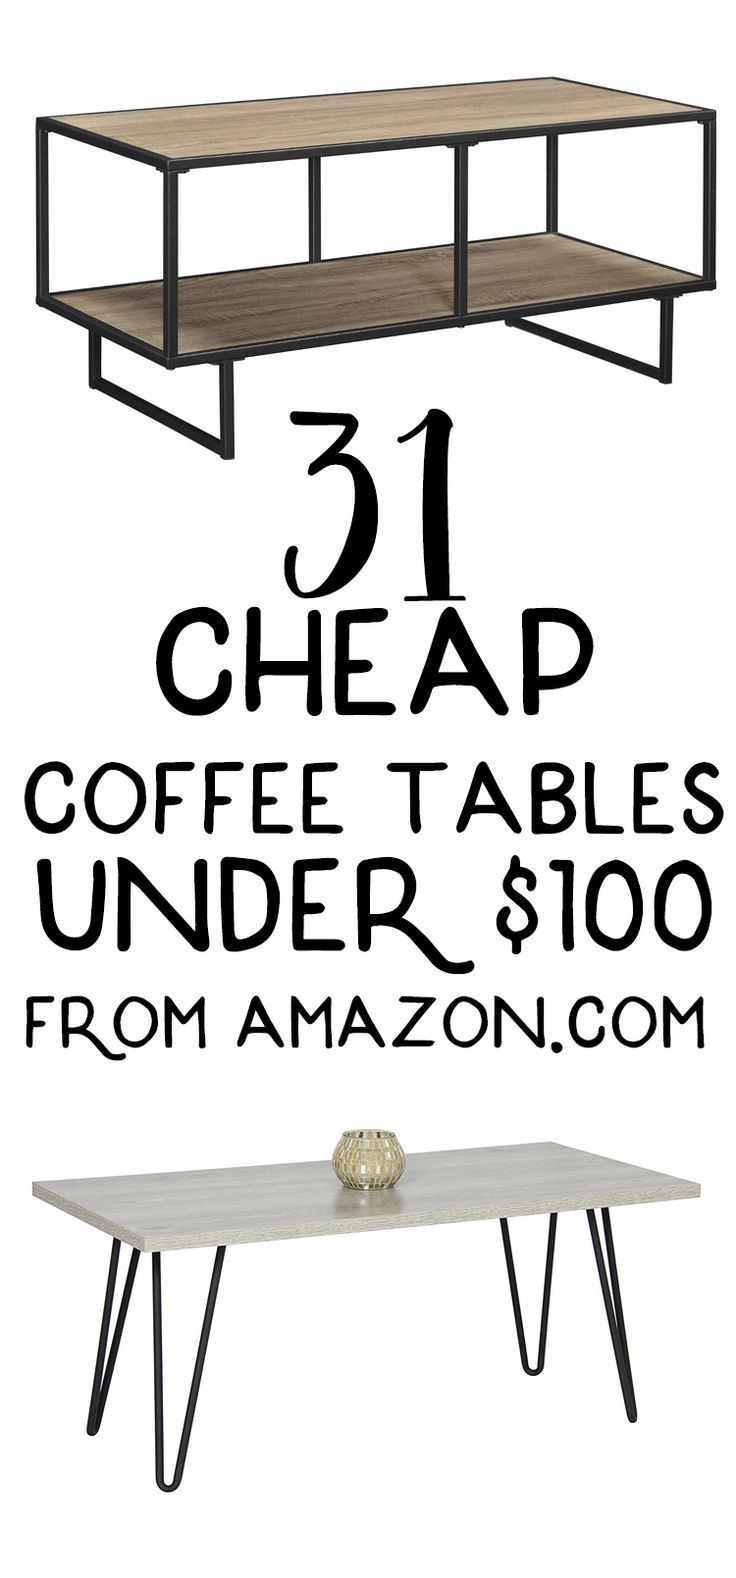 These cute, cheap coffee tables are all from Amazon and these coffee tables are all under $100 each! There are so many cheap coffee table ideas in this round up, like modern coffee tables and coffee tables with storage — perfect for my living room!